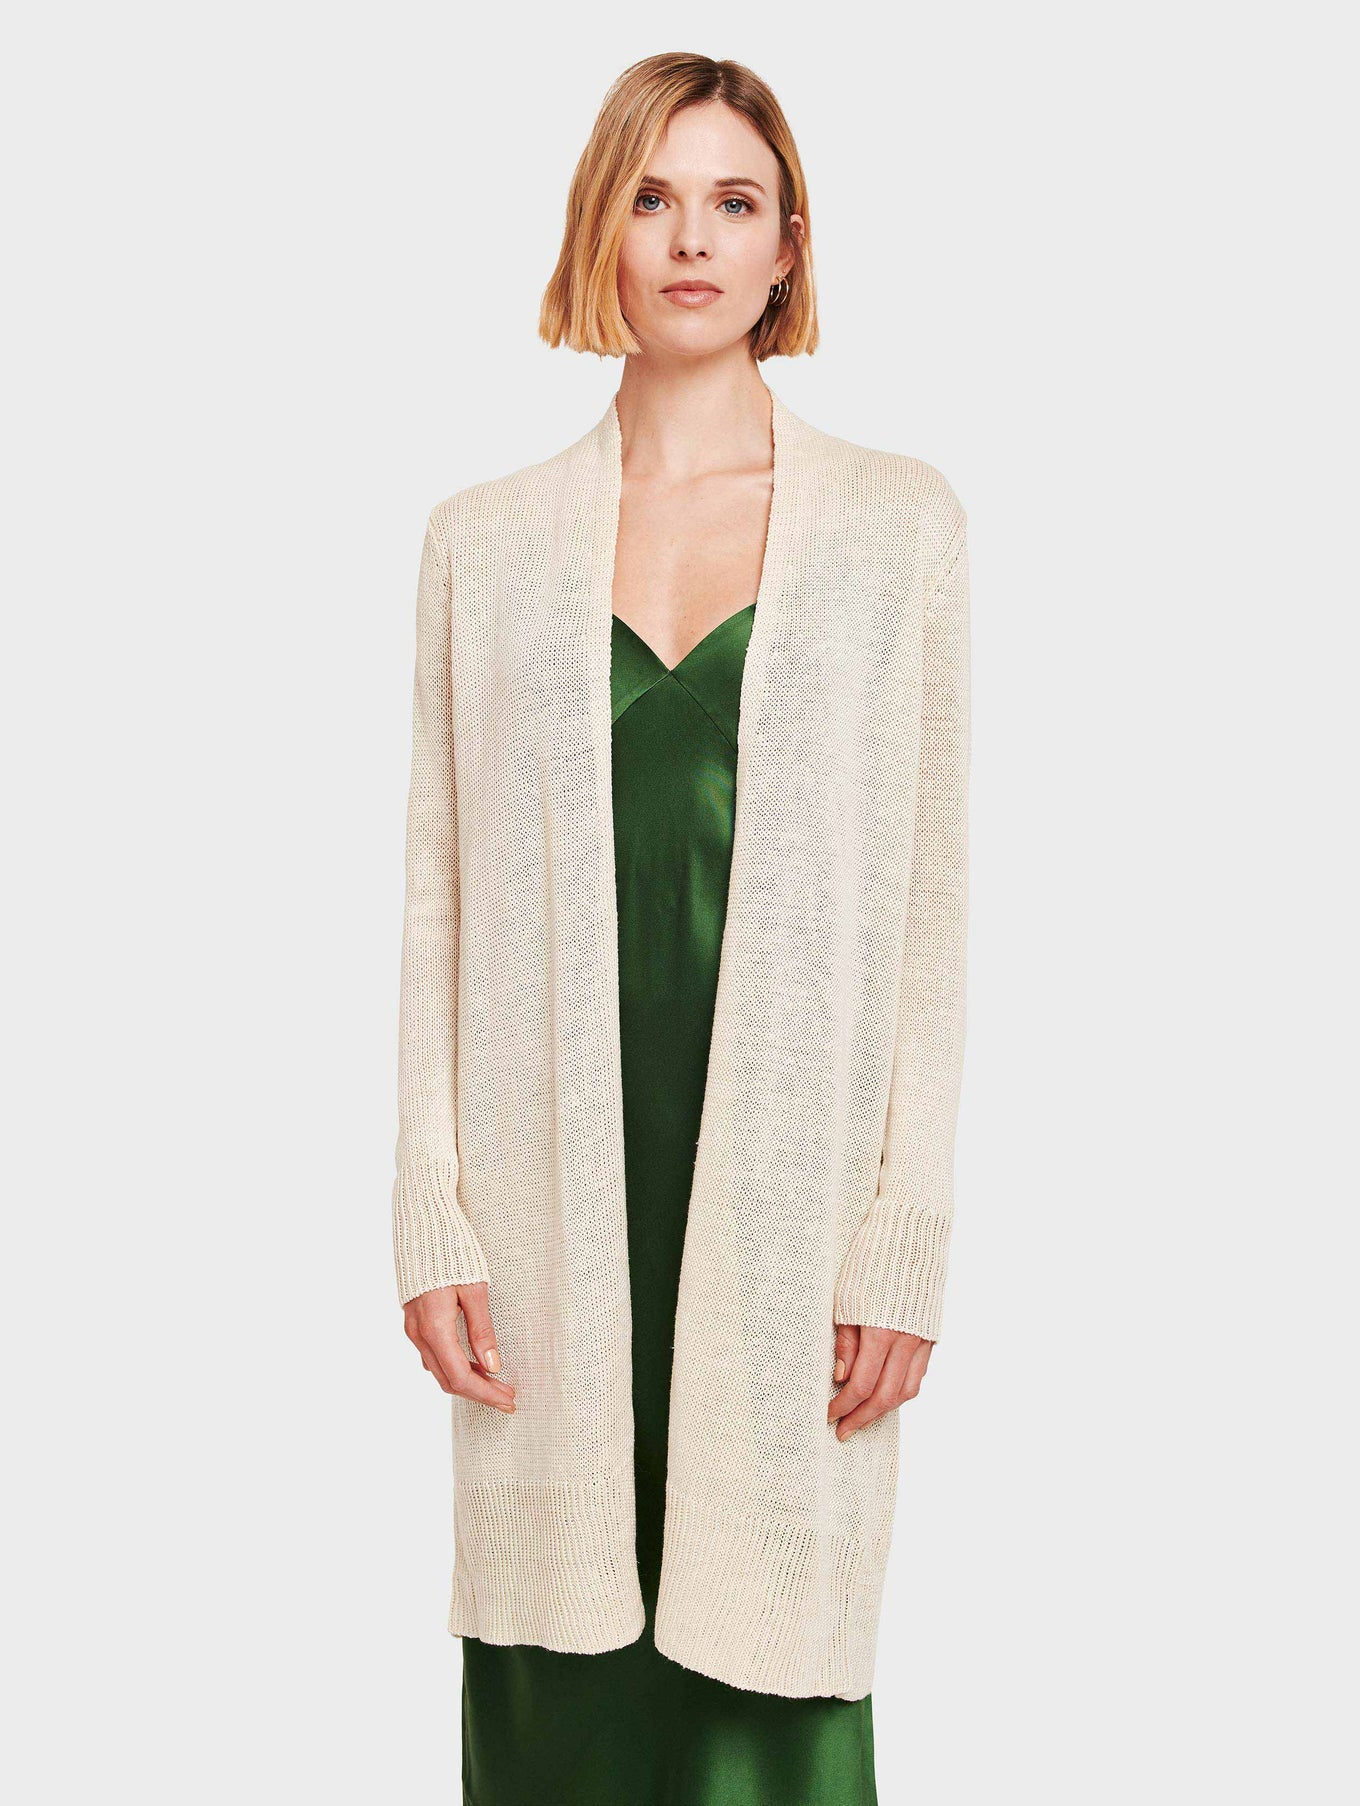 Corded Linen Long Open Cardigan - Ivory - Image 2